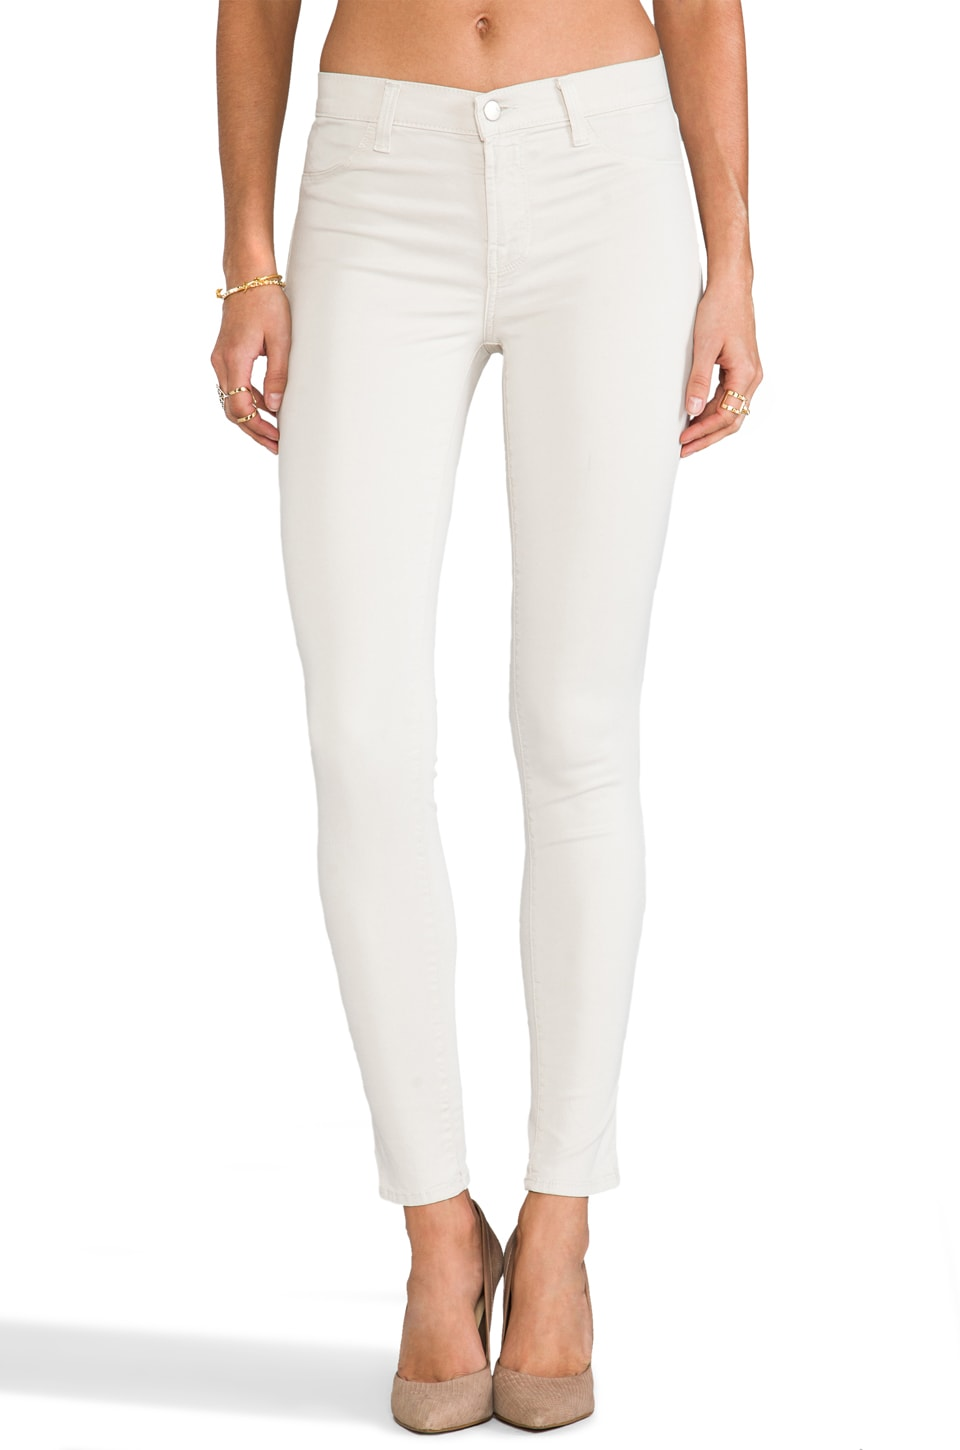 J Brand Luxe Satin Skinny in Chalk